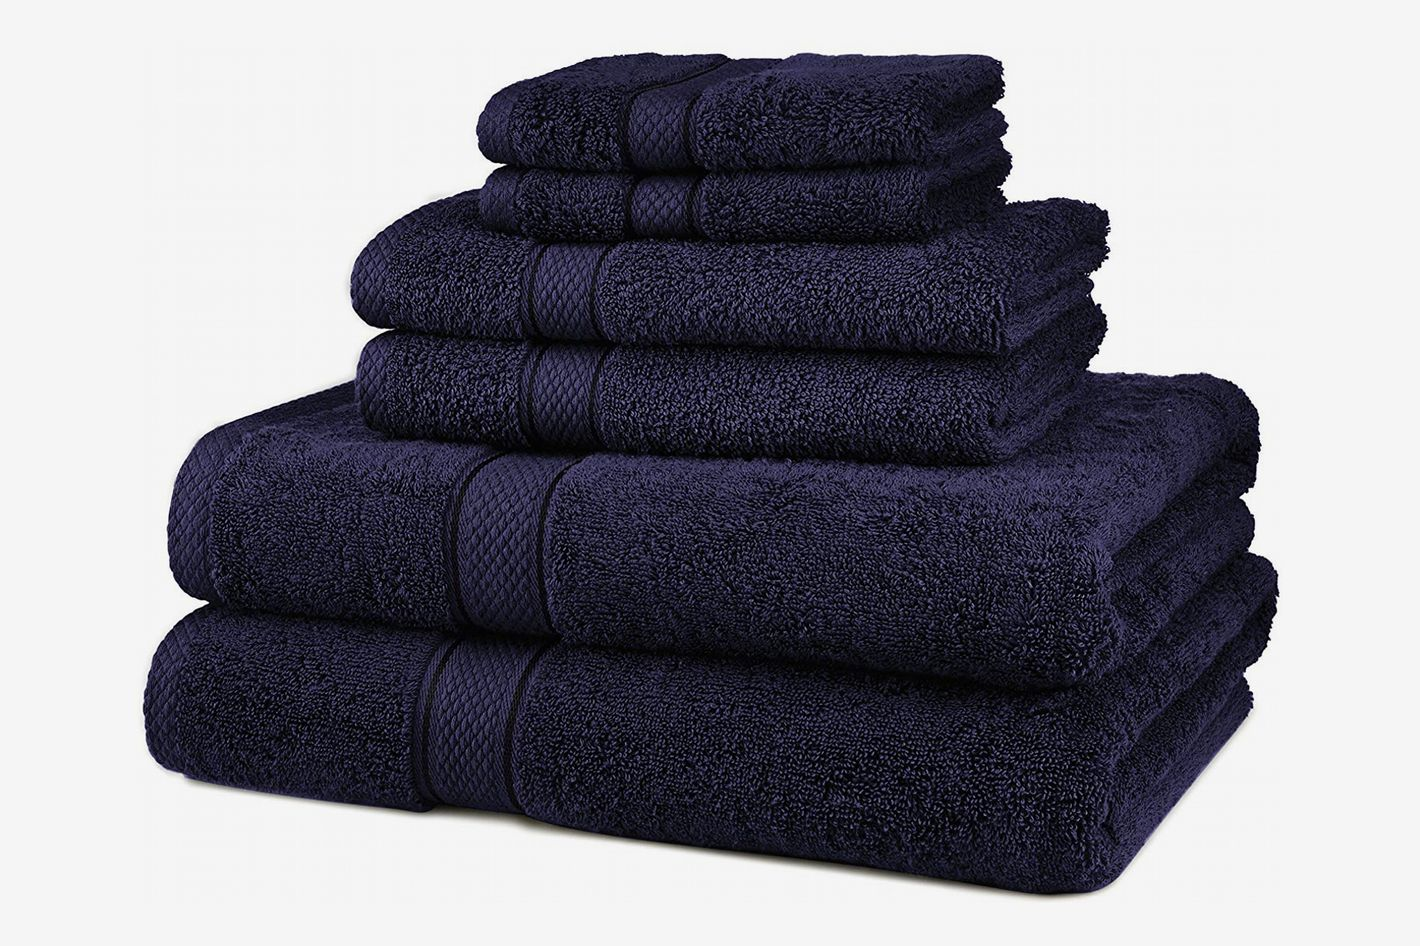 15 Best Towels And Bath Towels 2019